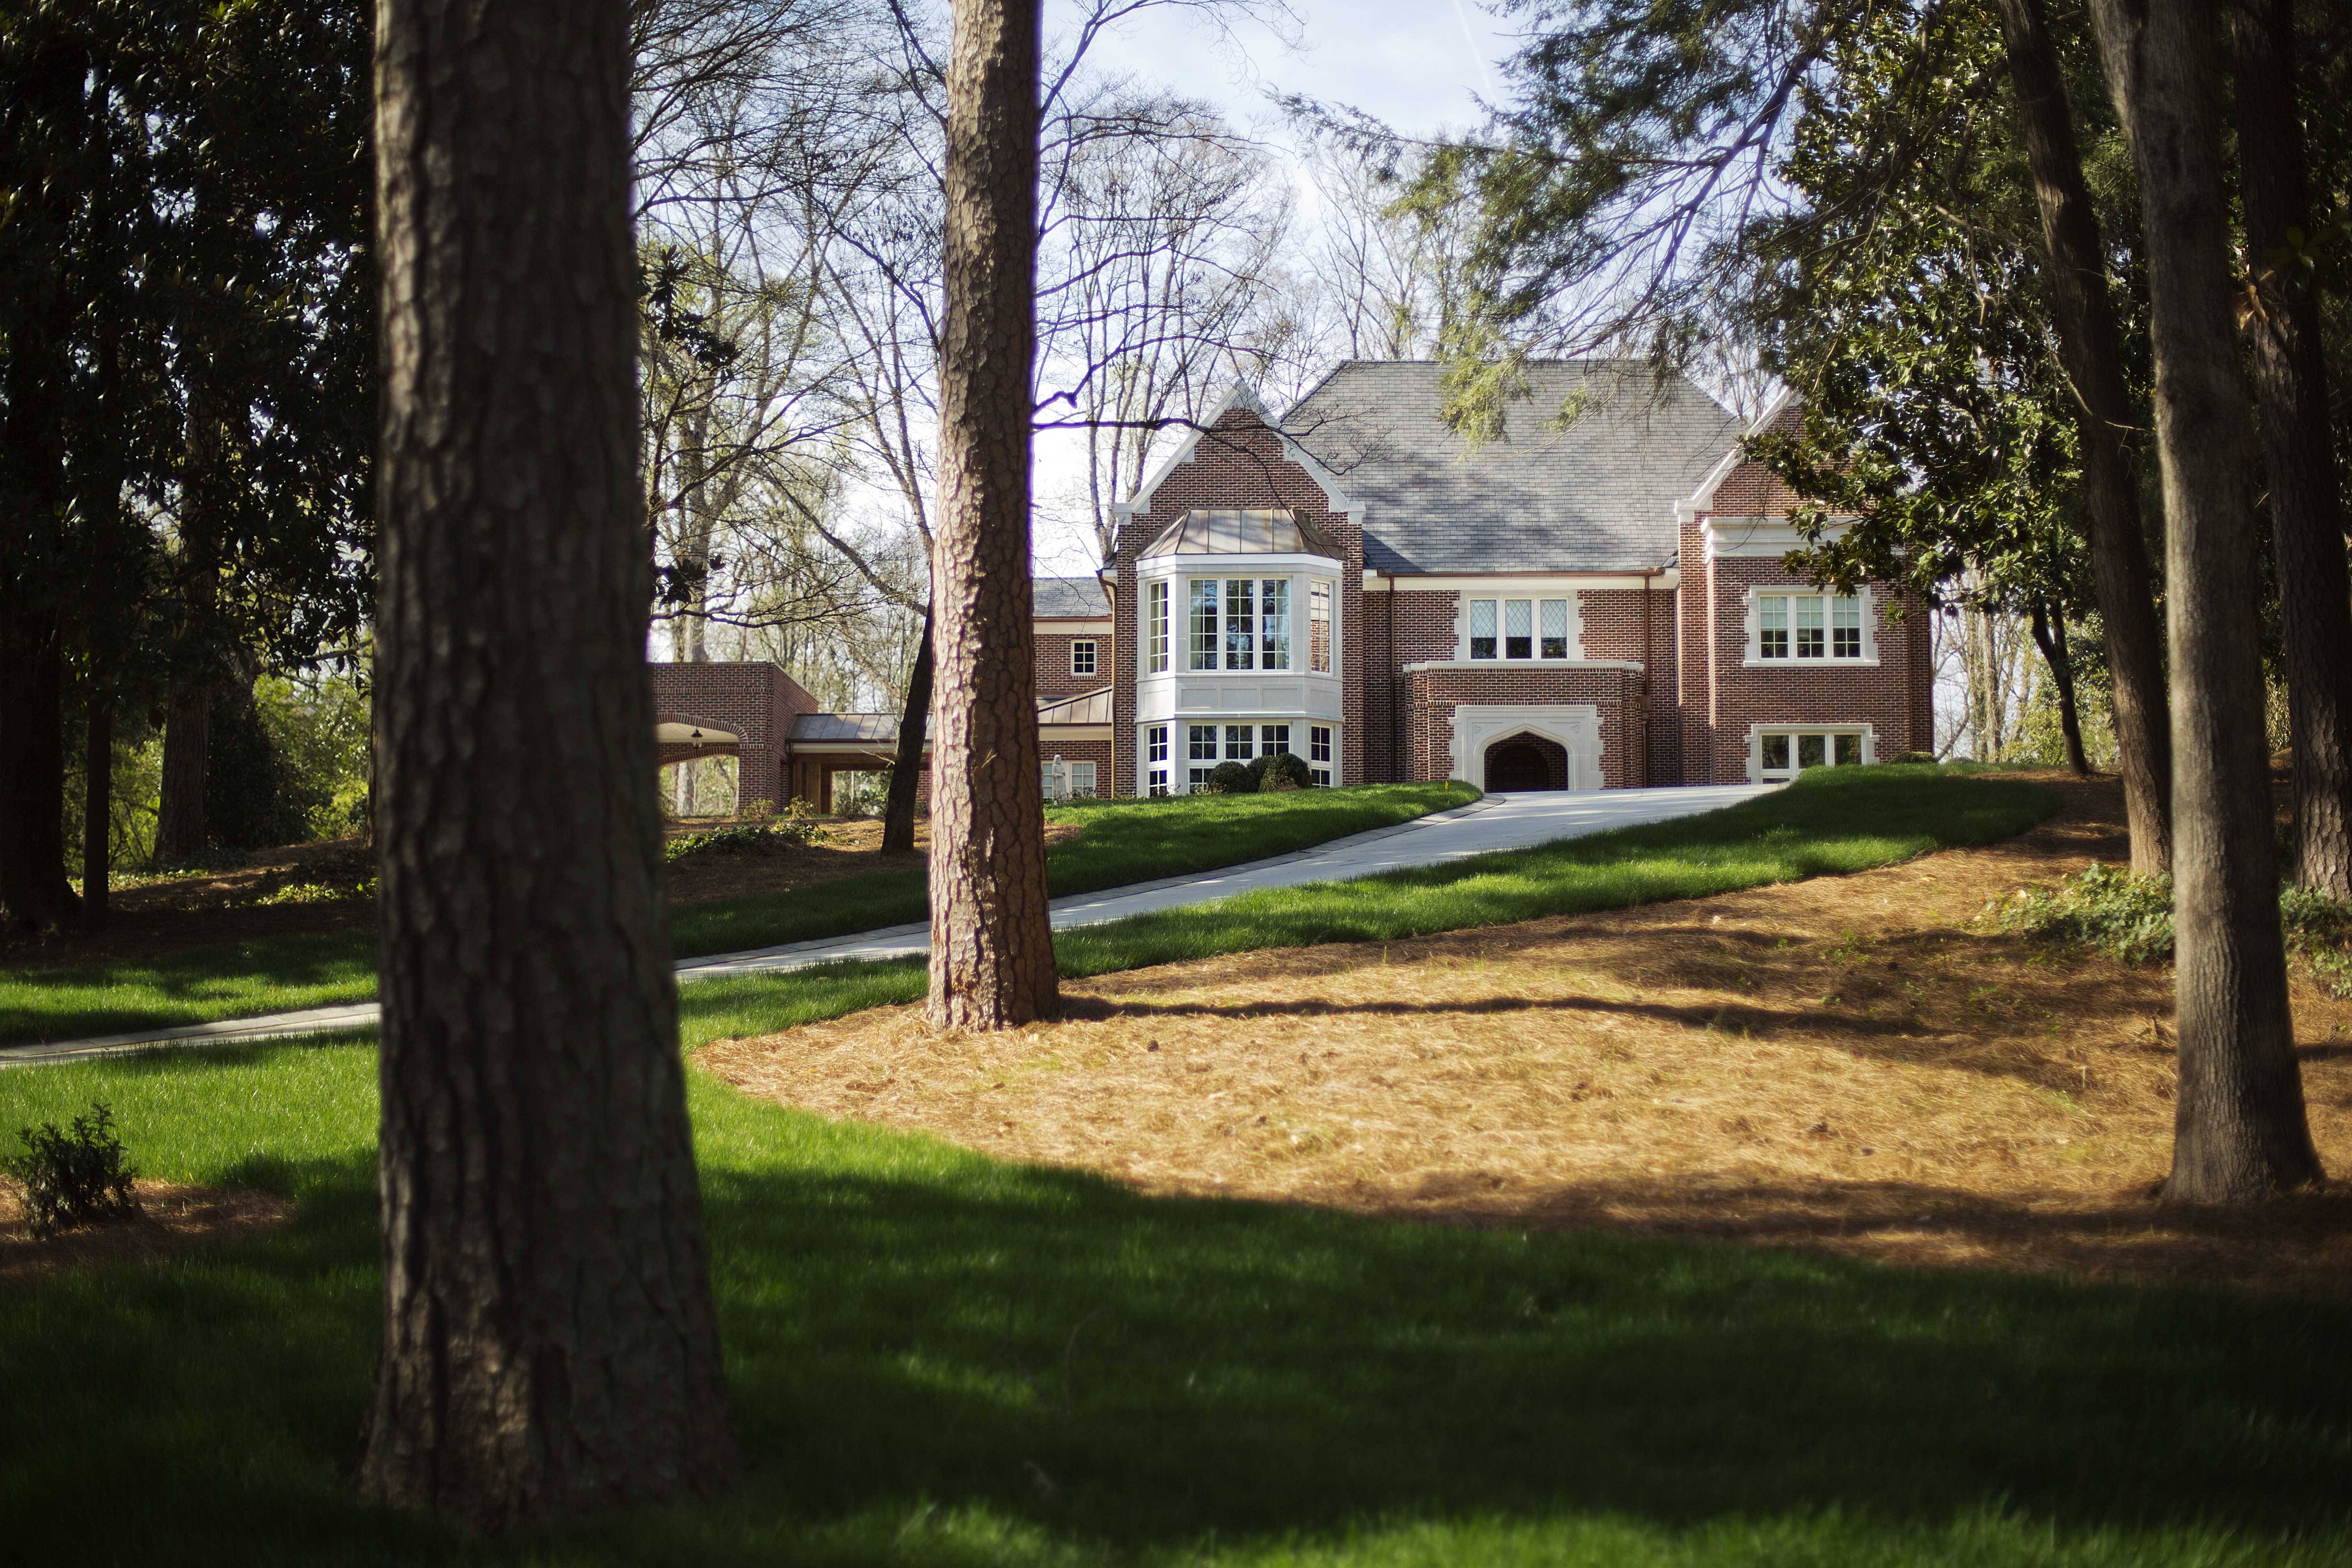 This is the $2.2 million residence of Atlanta Archbishop Wilton Gregory in the upscale Buckhead neighborhood in Atlanta. Gregory apologized for his spending and offered to put the home up for sale after Pope Francis permanently removed a German bishop for his lavish spending on a renovation project.